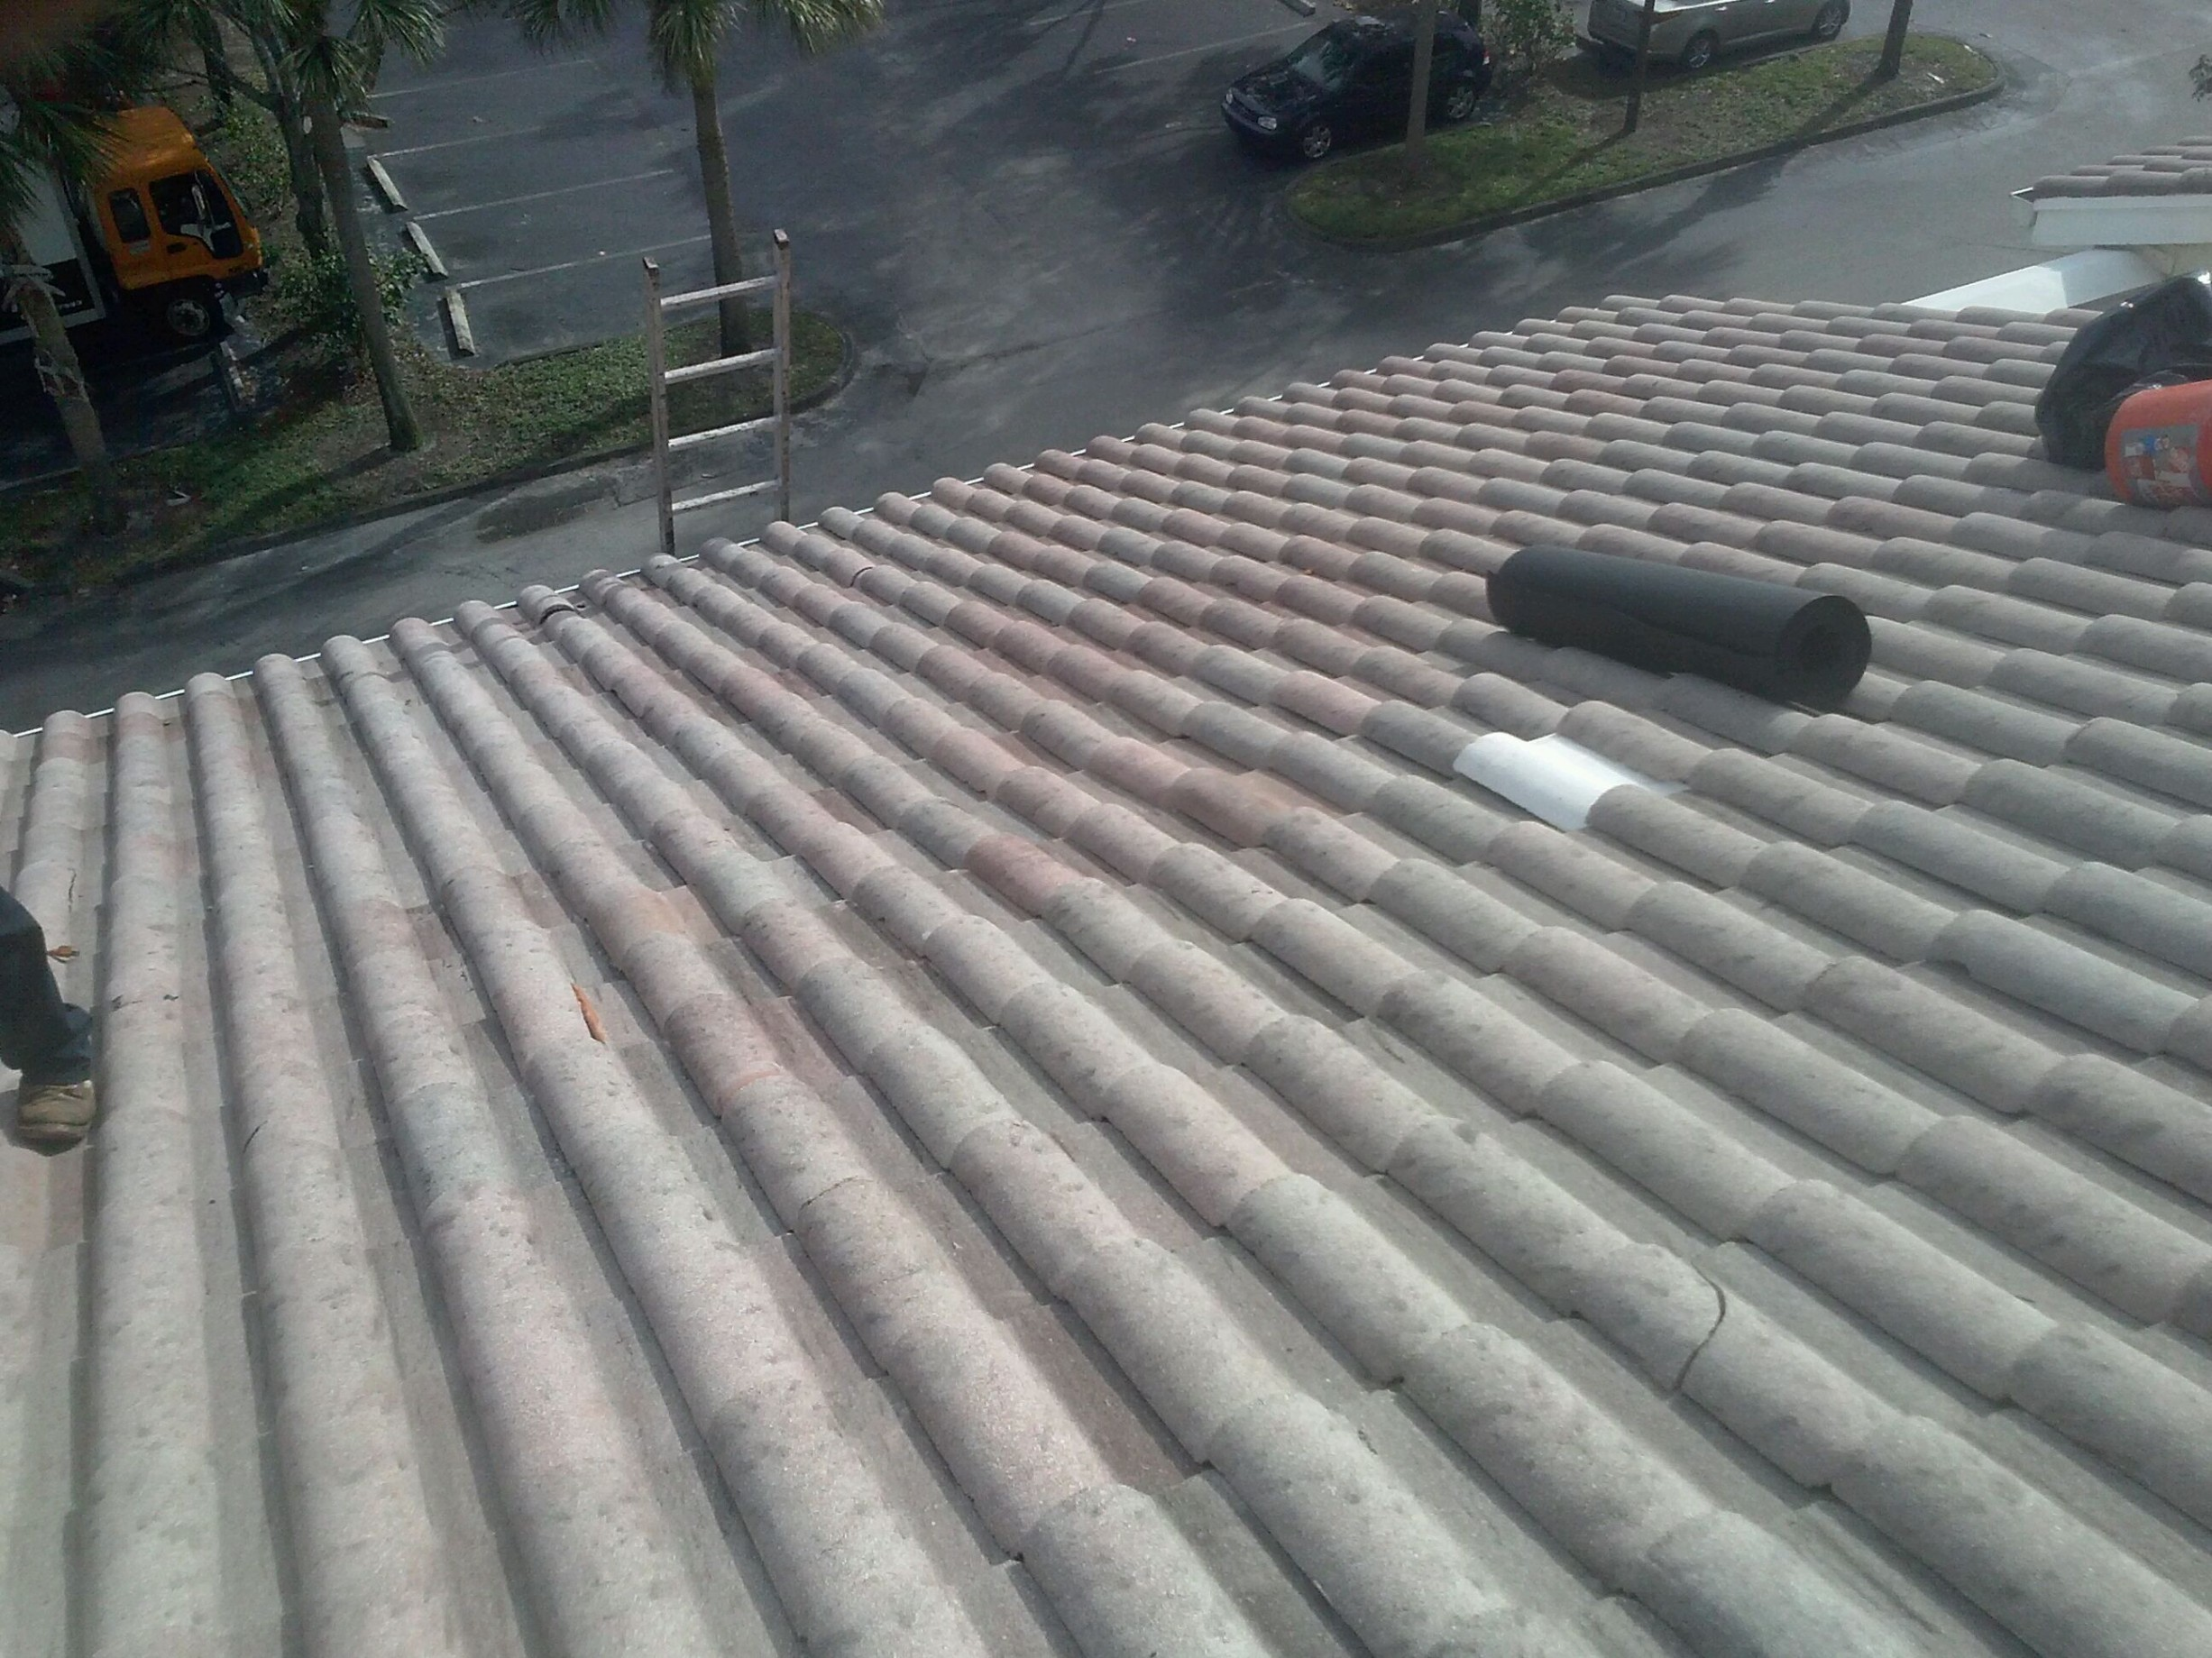 Roofing company in Boca Raton